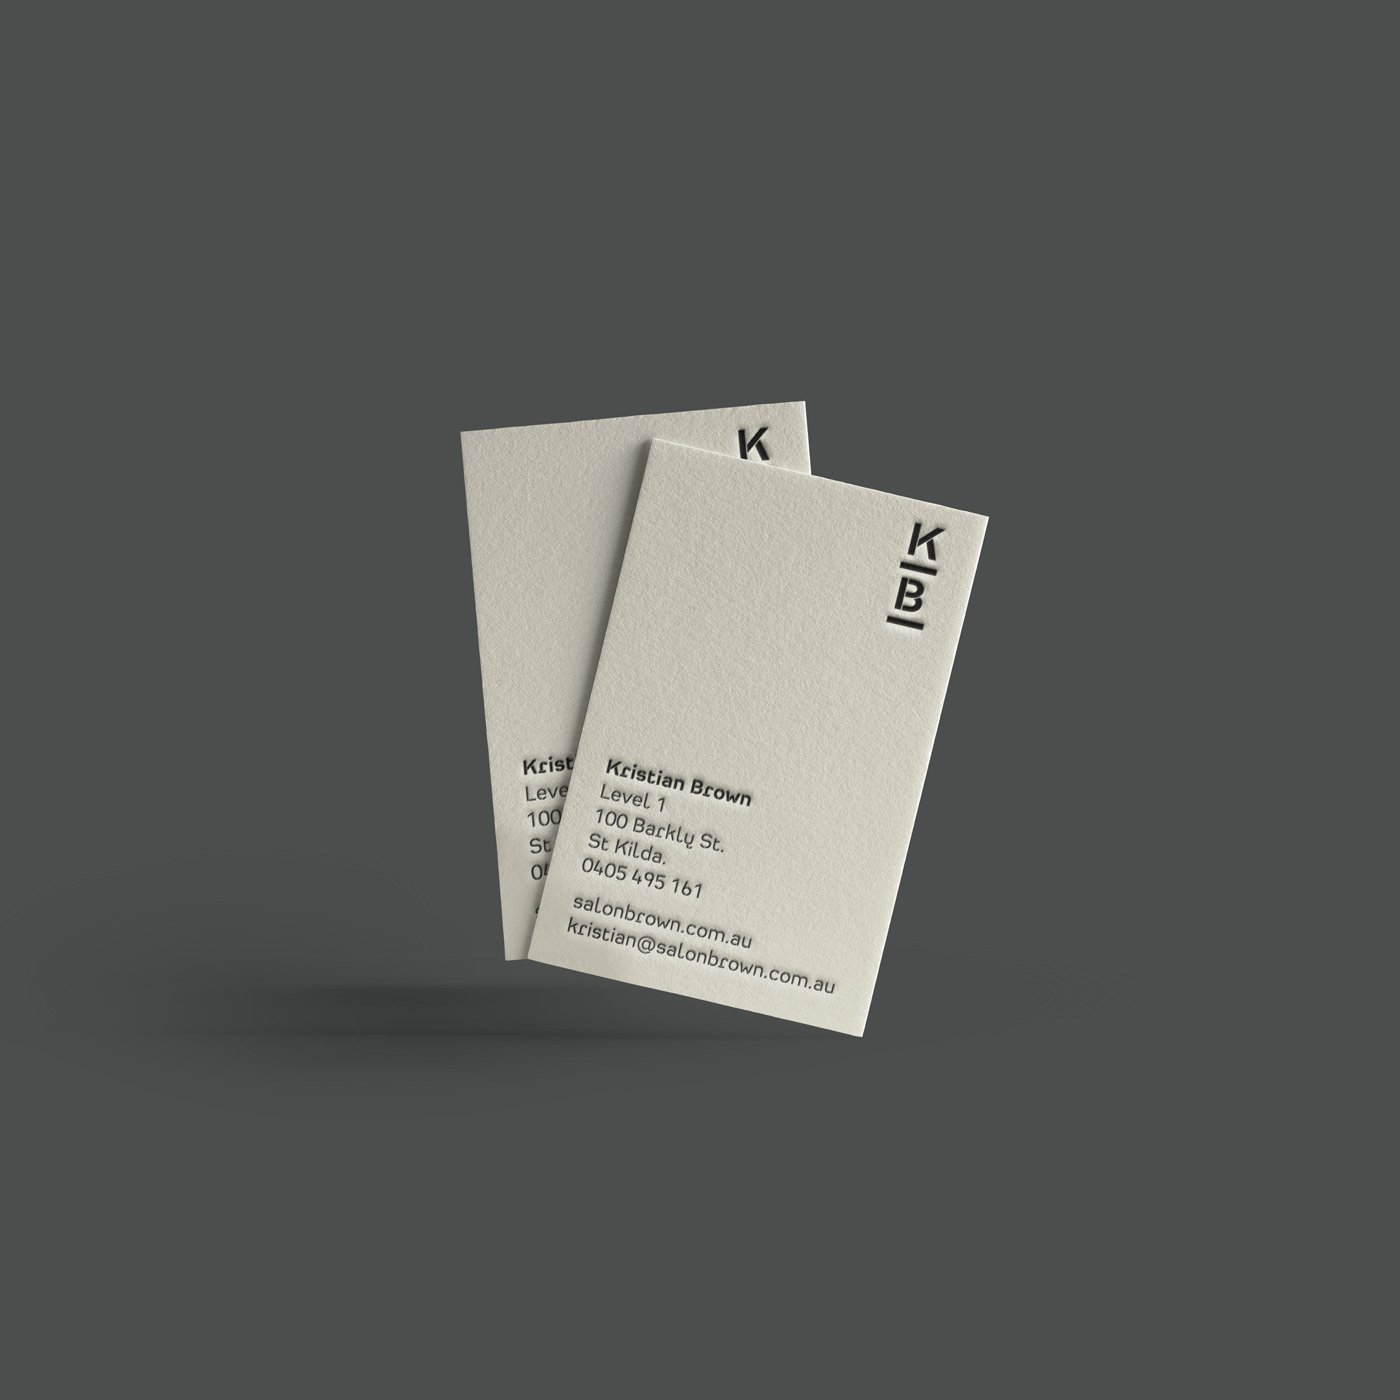 Kristian Brown businesscard design